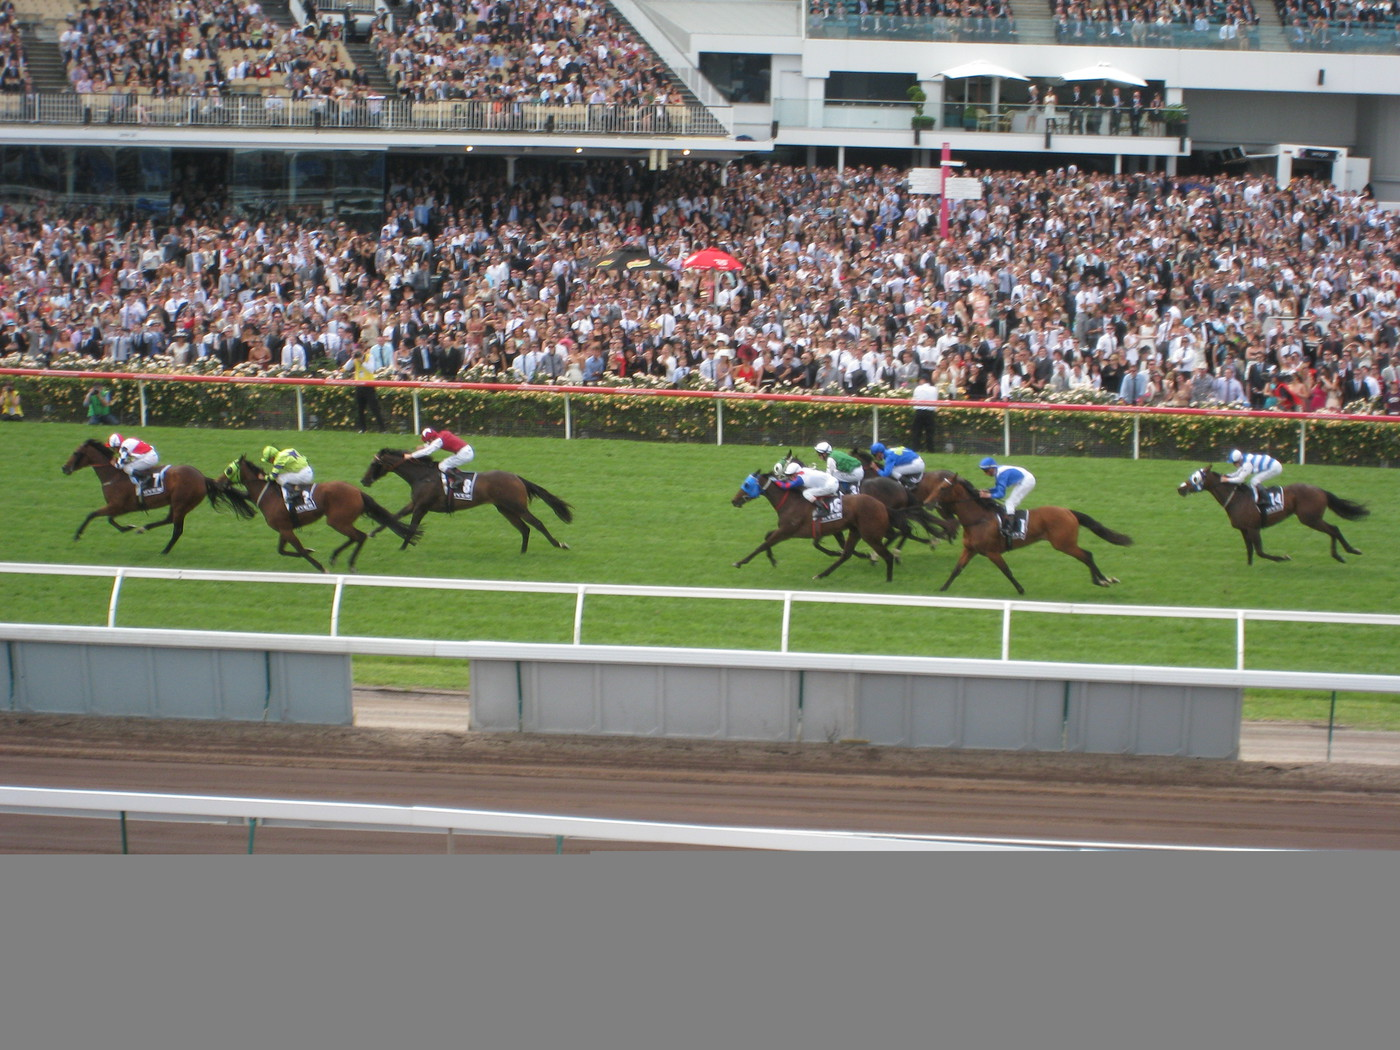 Longines Flat Racing Event: Elegance reigns at Derby Day as part of 2011 Melbourne Cup Carnival 1